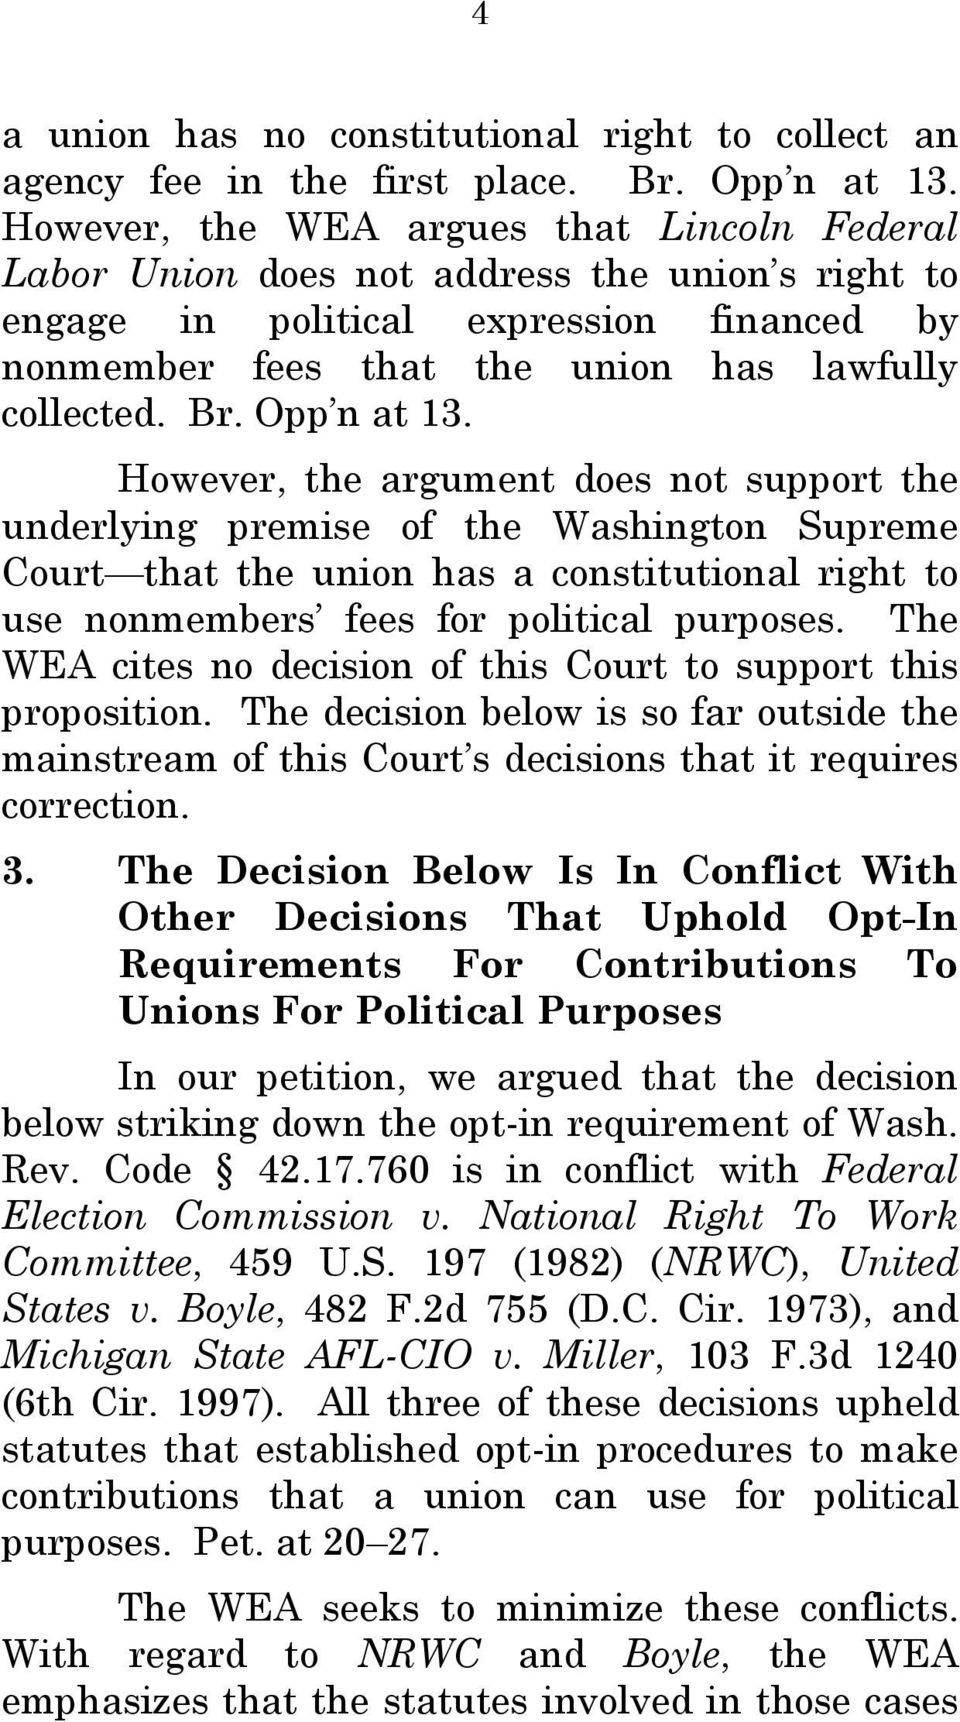 Opp n at 13. However, the argument does not support the underlying premise of the Washington Supreme Court that the union has a constitutional right to use nonmembers fees for political purposes.